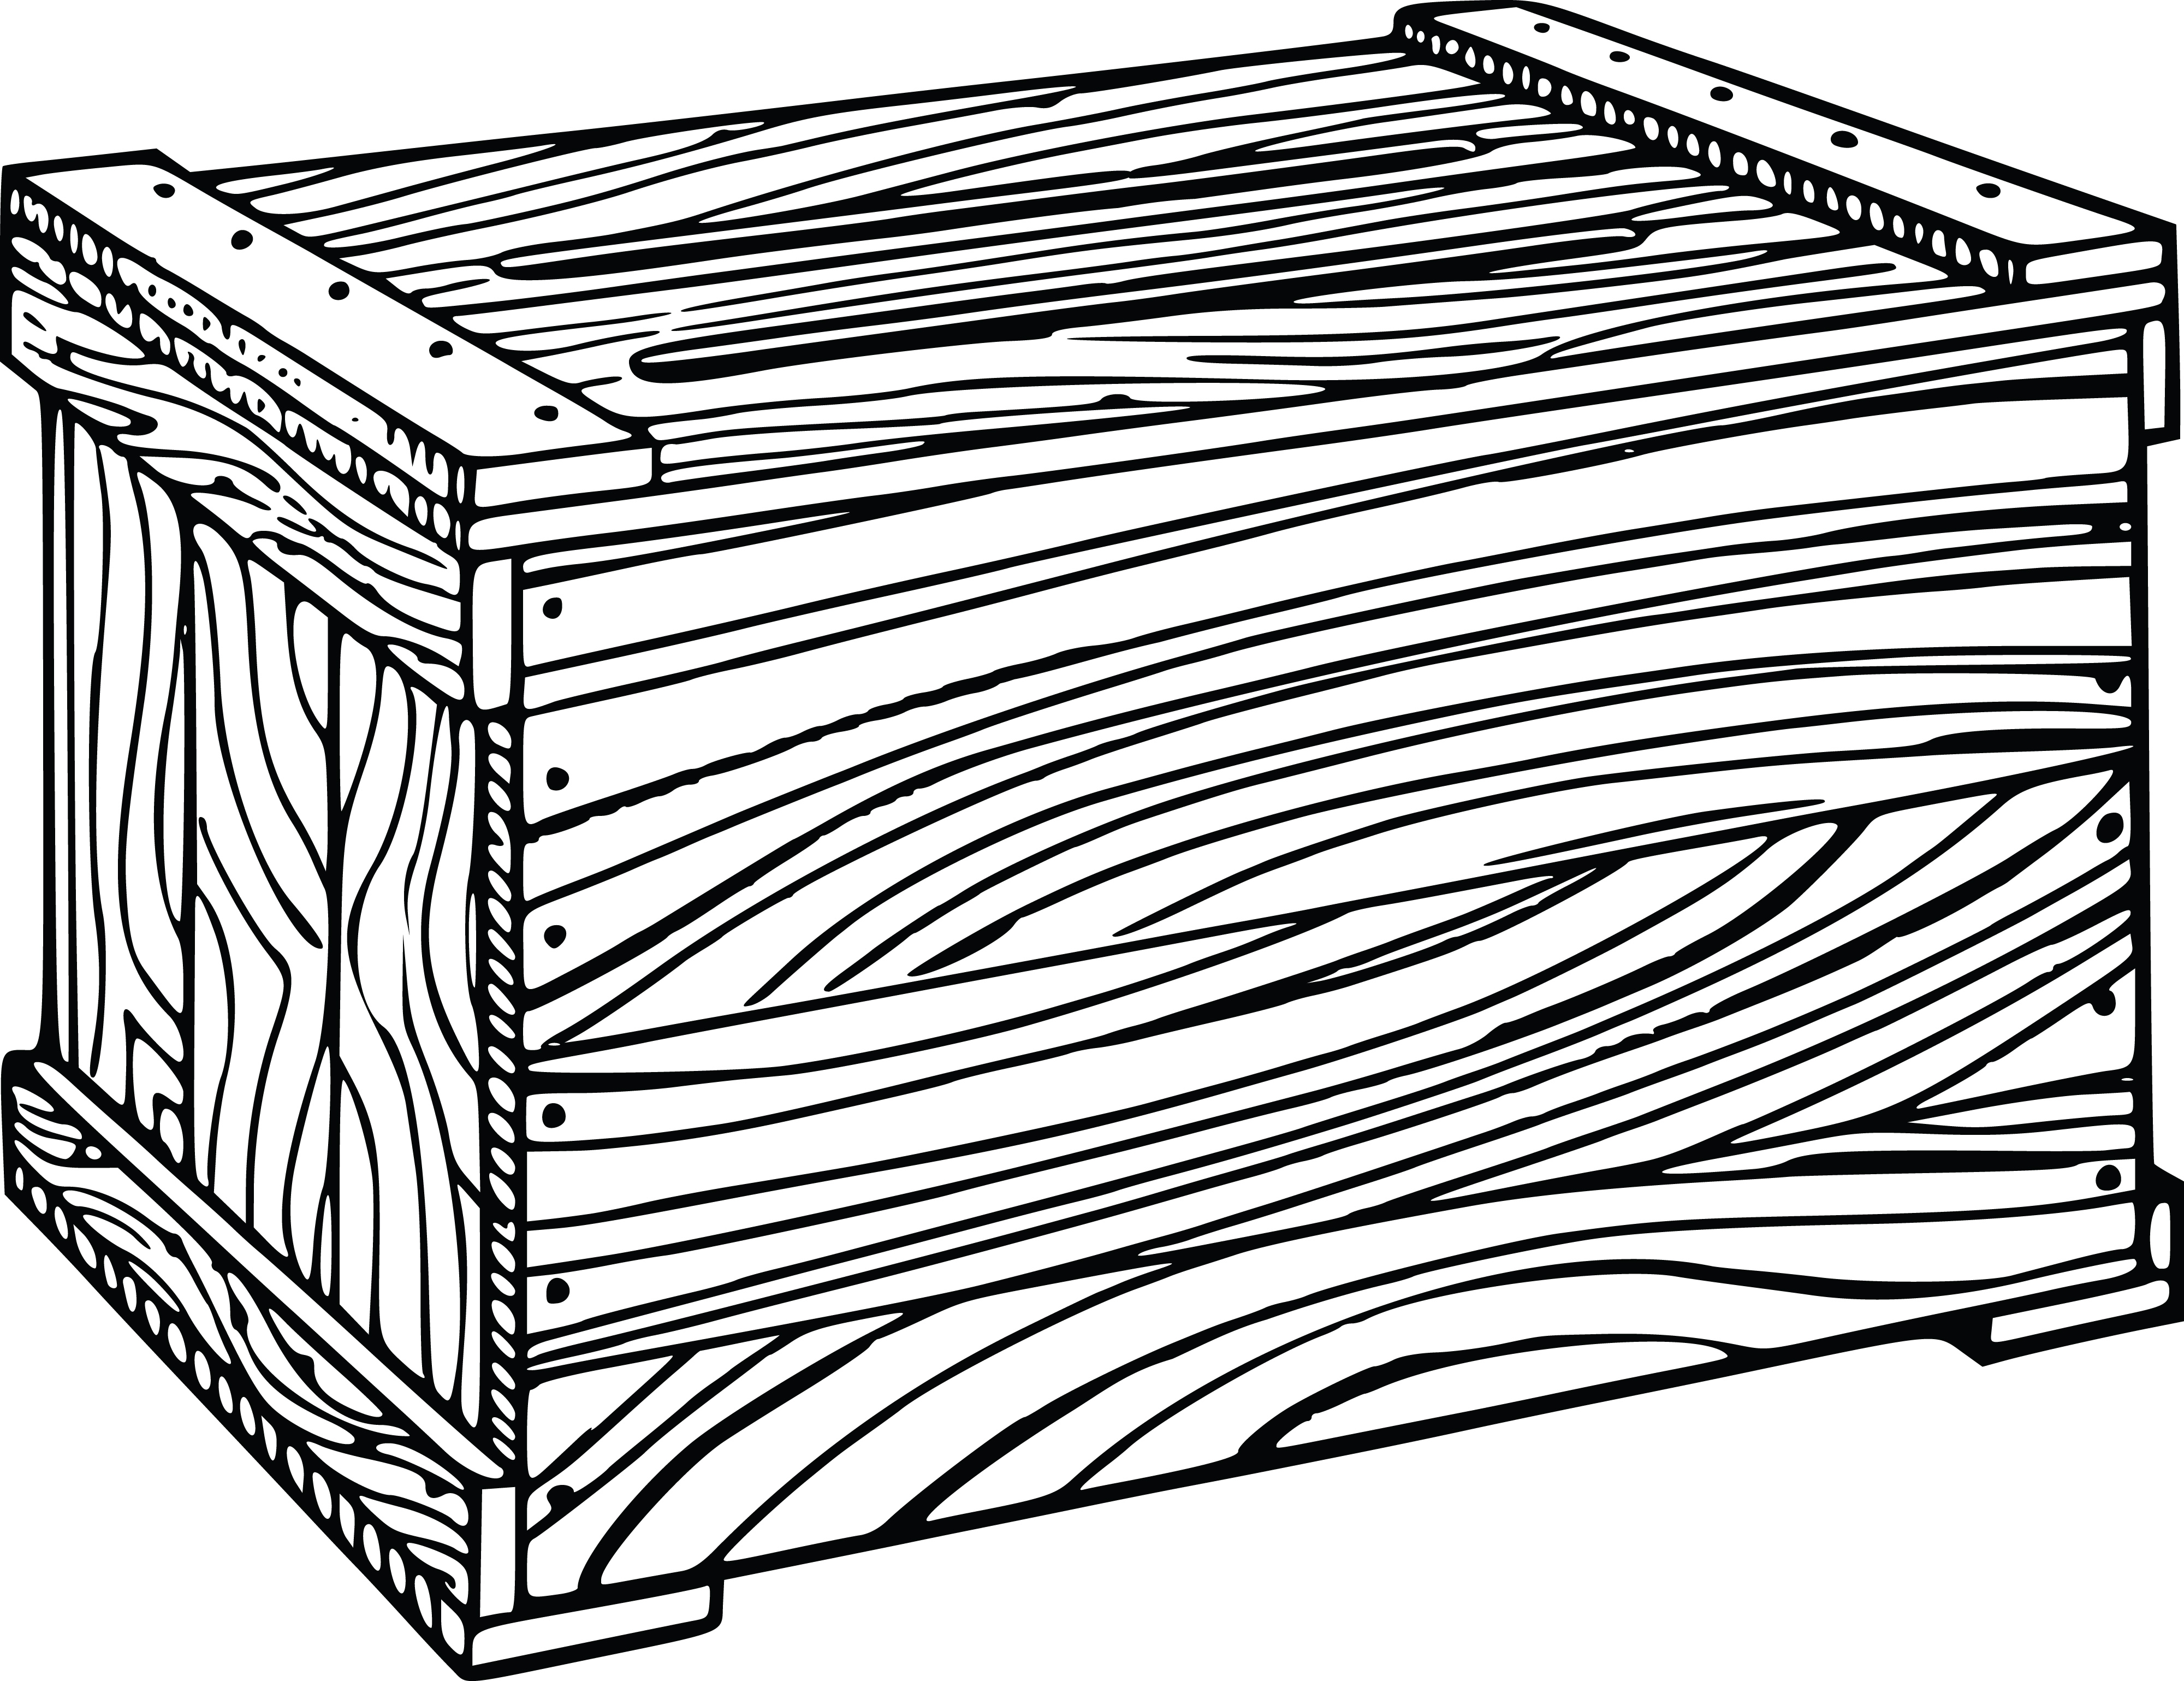 Free Clipart Of A wooden crate.